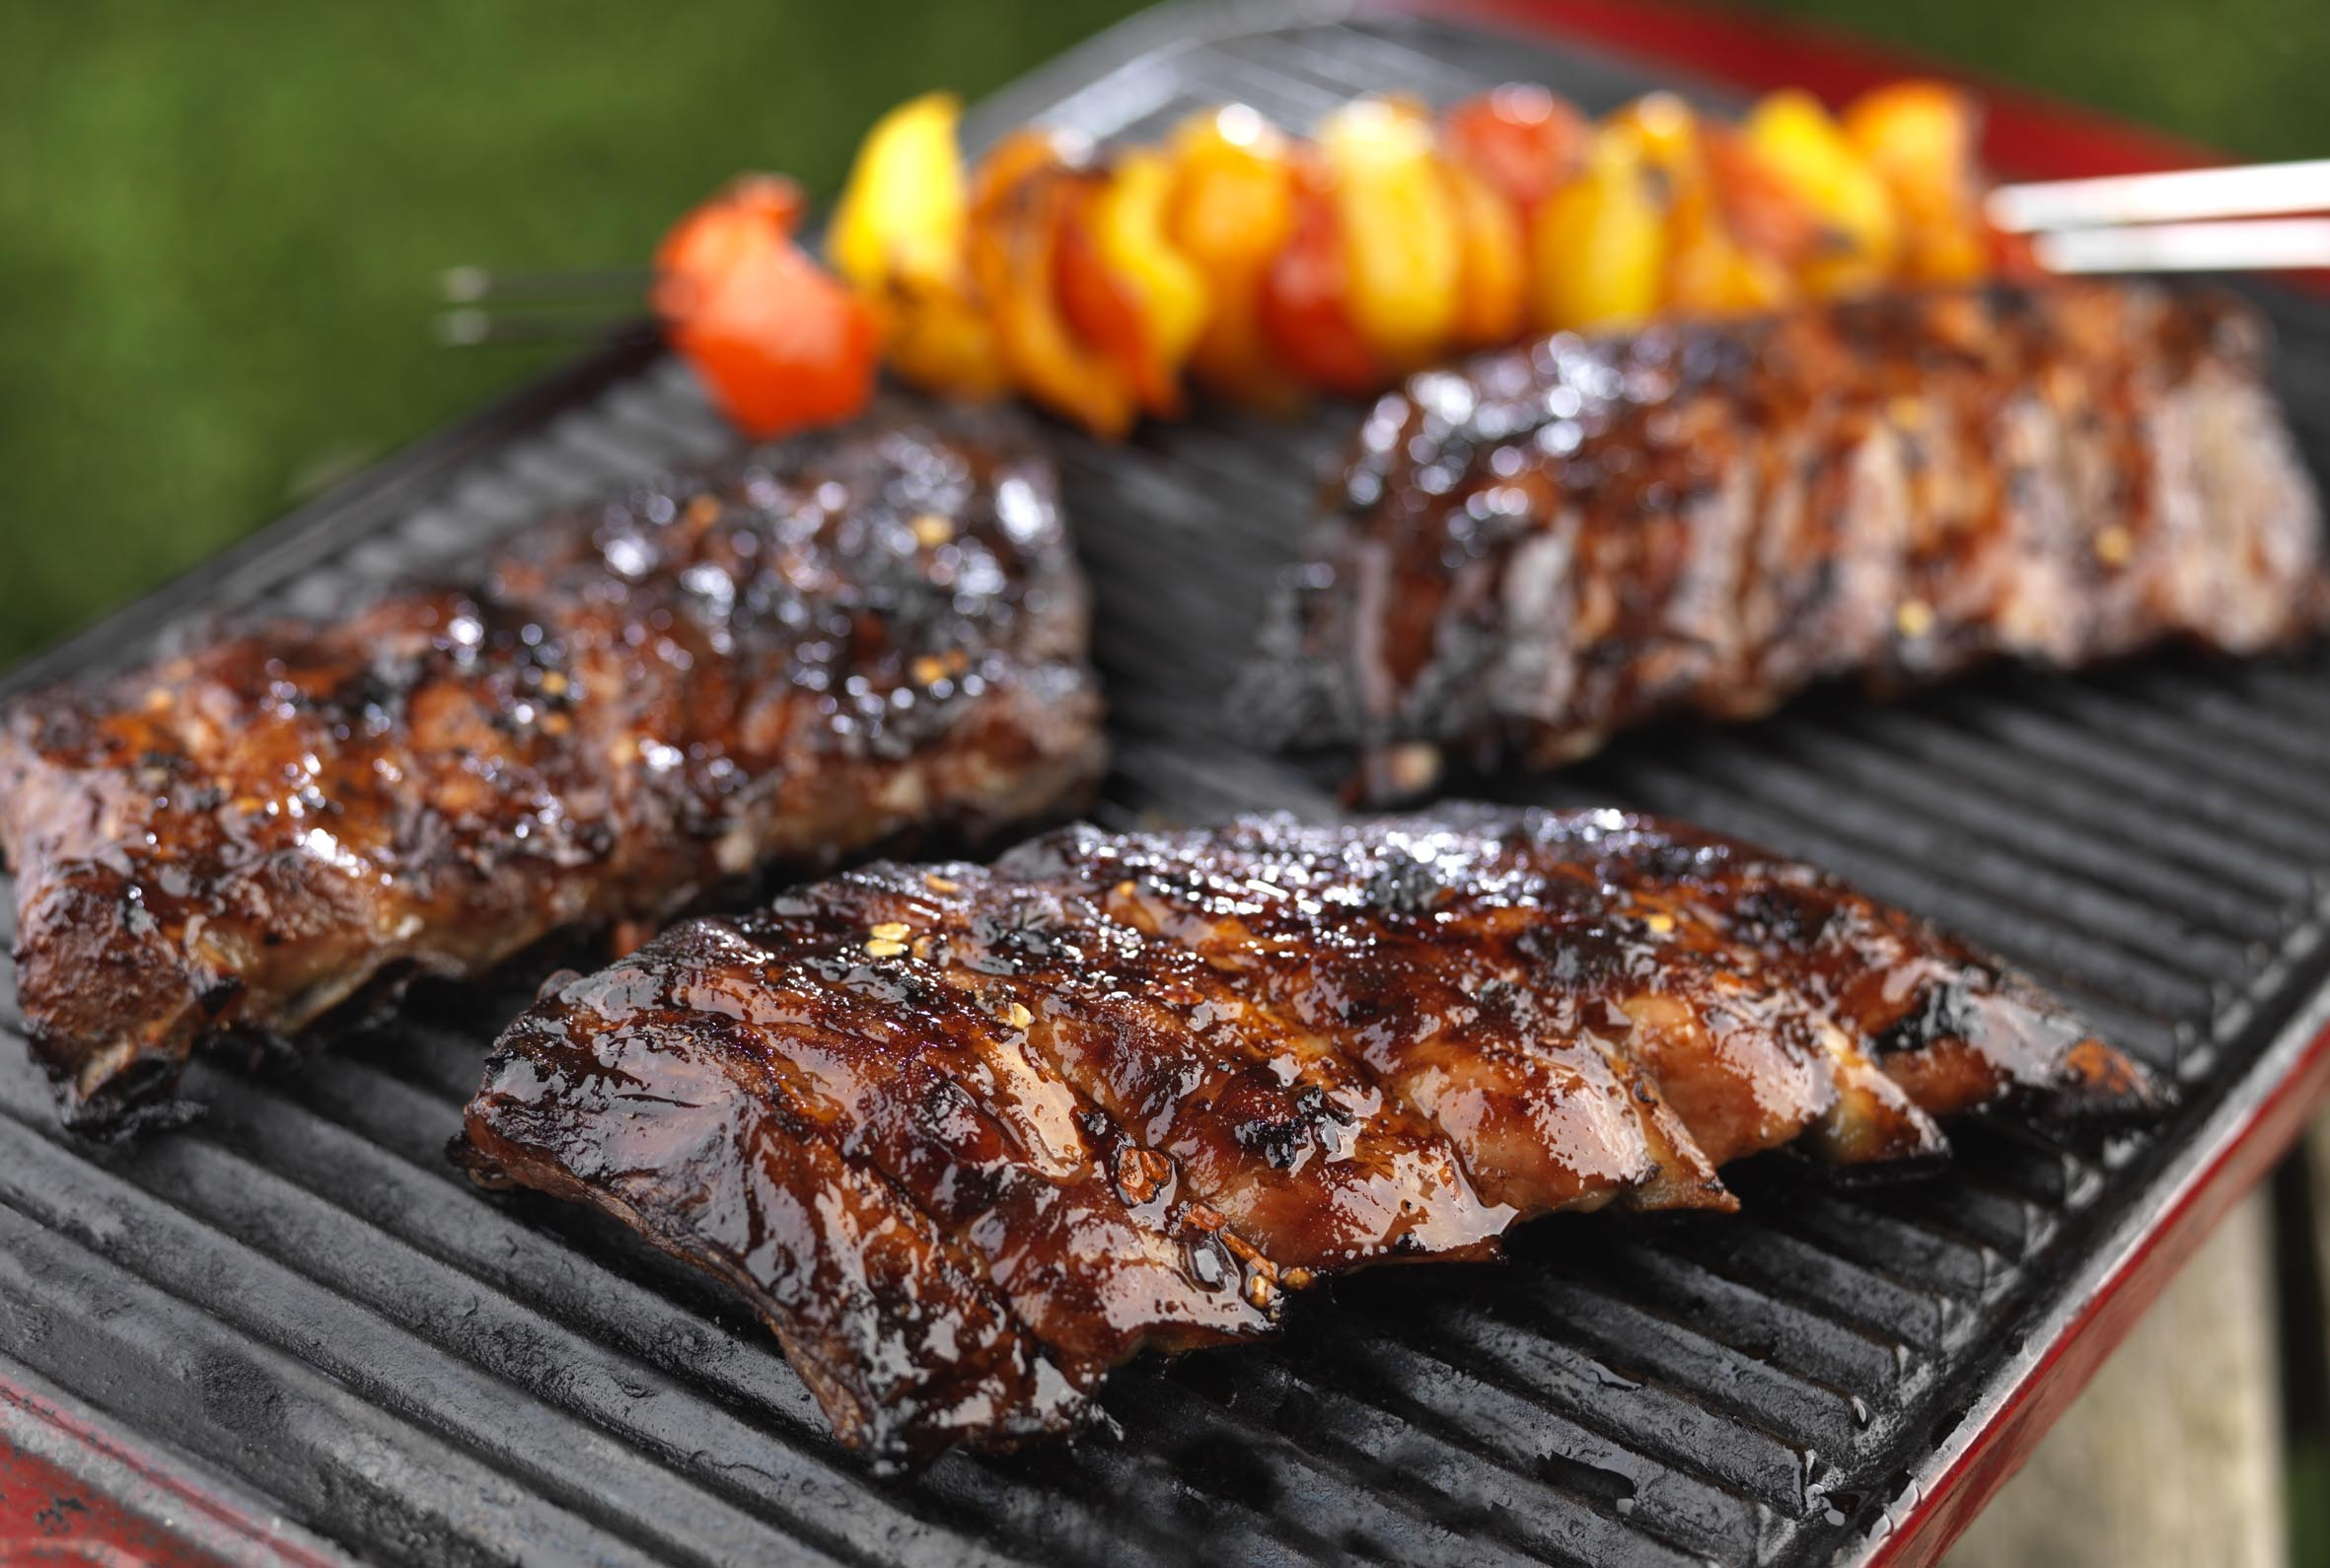 Ribs cooking on a Bank Holiday BBQ - it could be yours